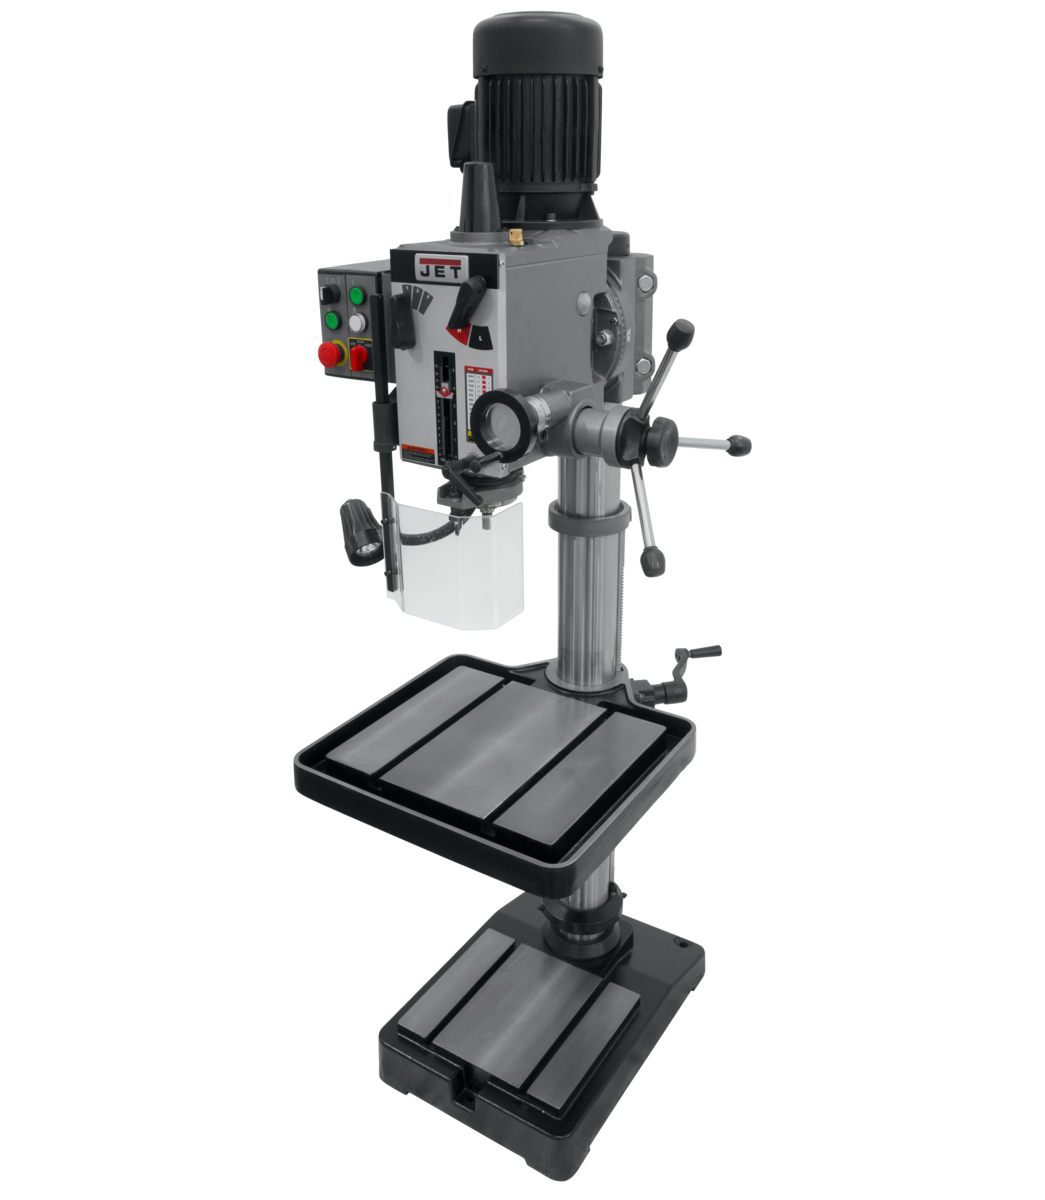 Geared Head Drill Presses